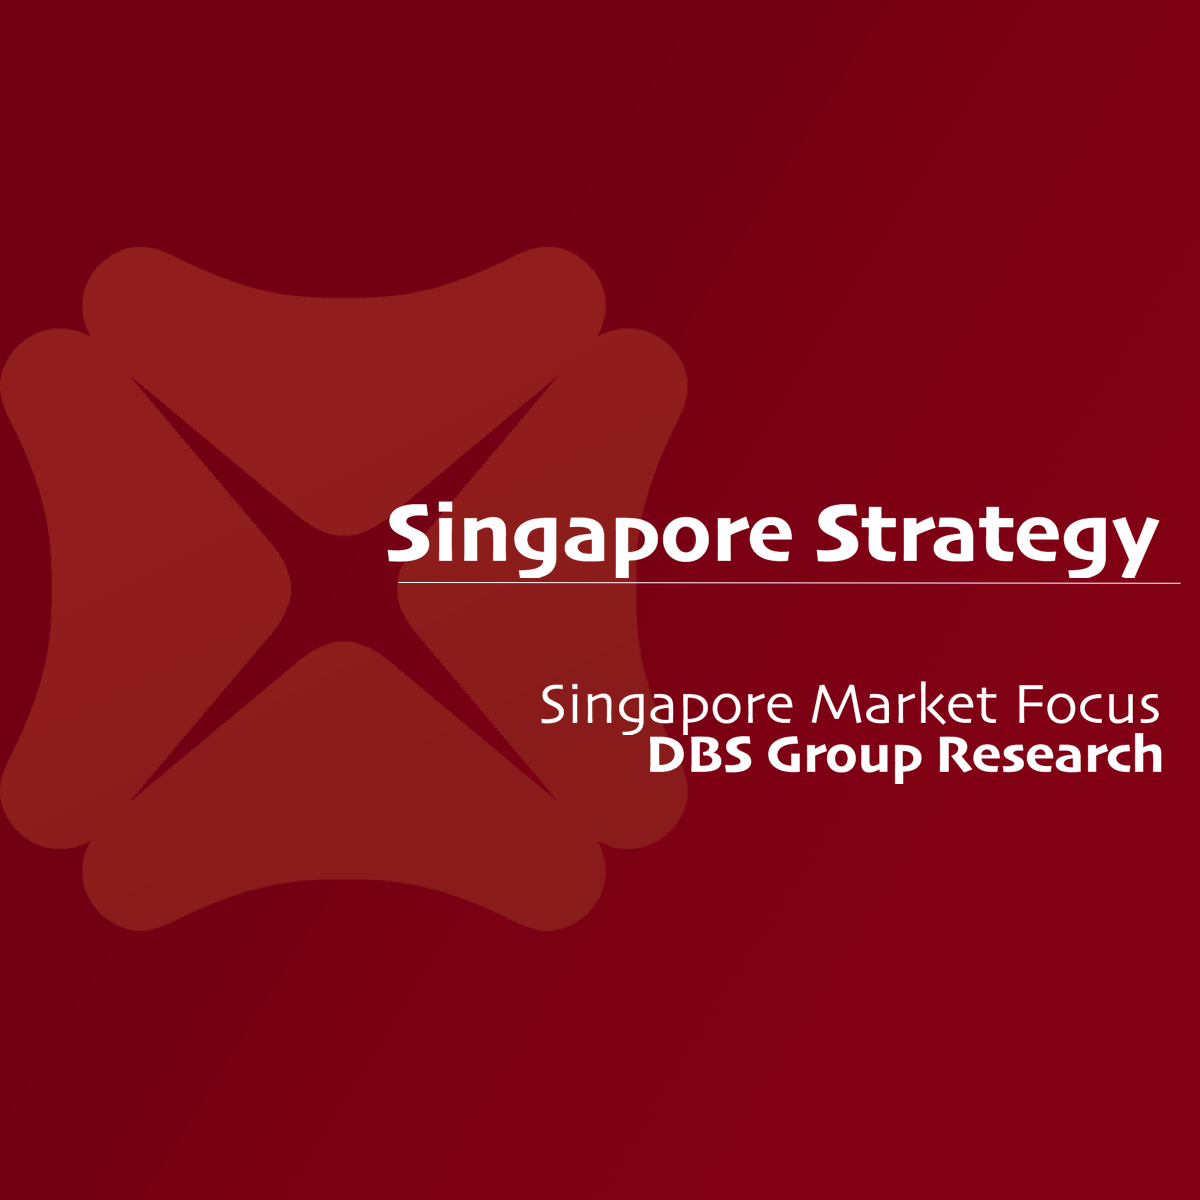 Singapore Market Outlook 2018 - DBS Vickers 2017-11-27: Recovery, Revision, Re-rating